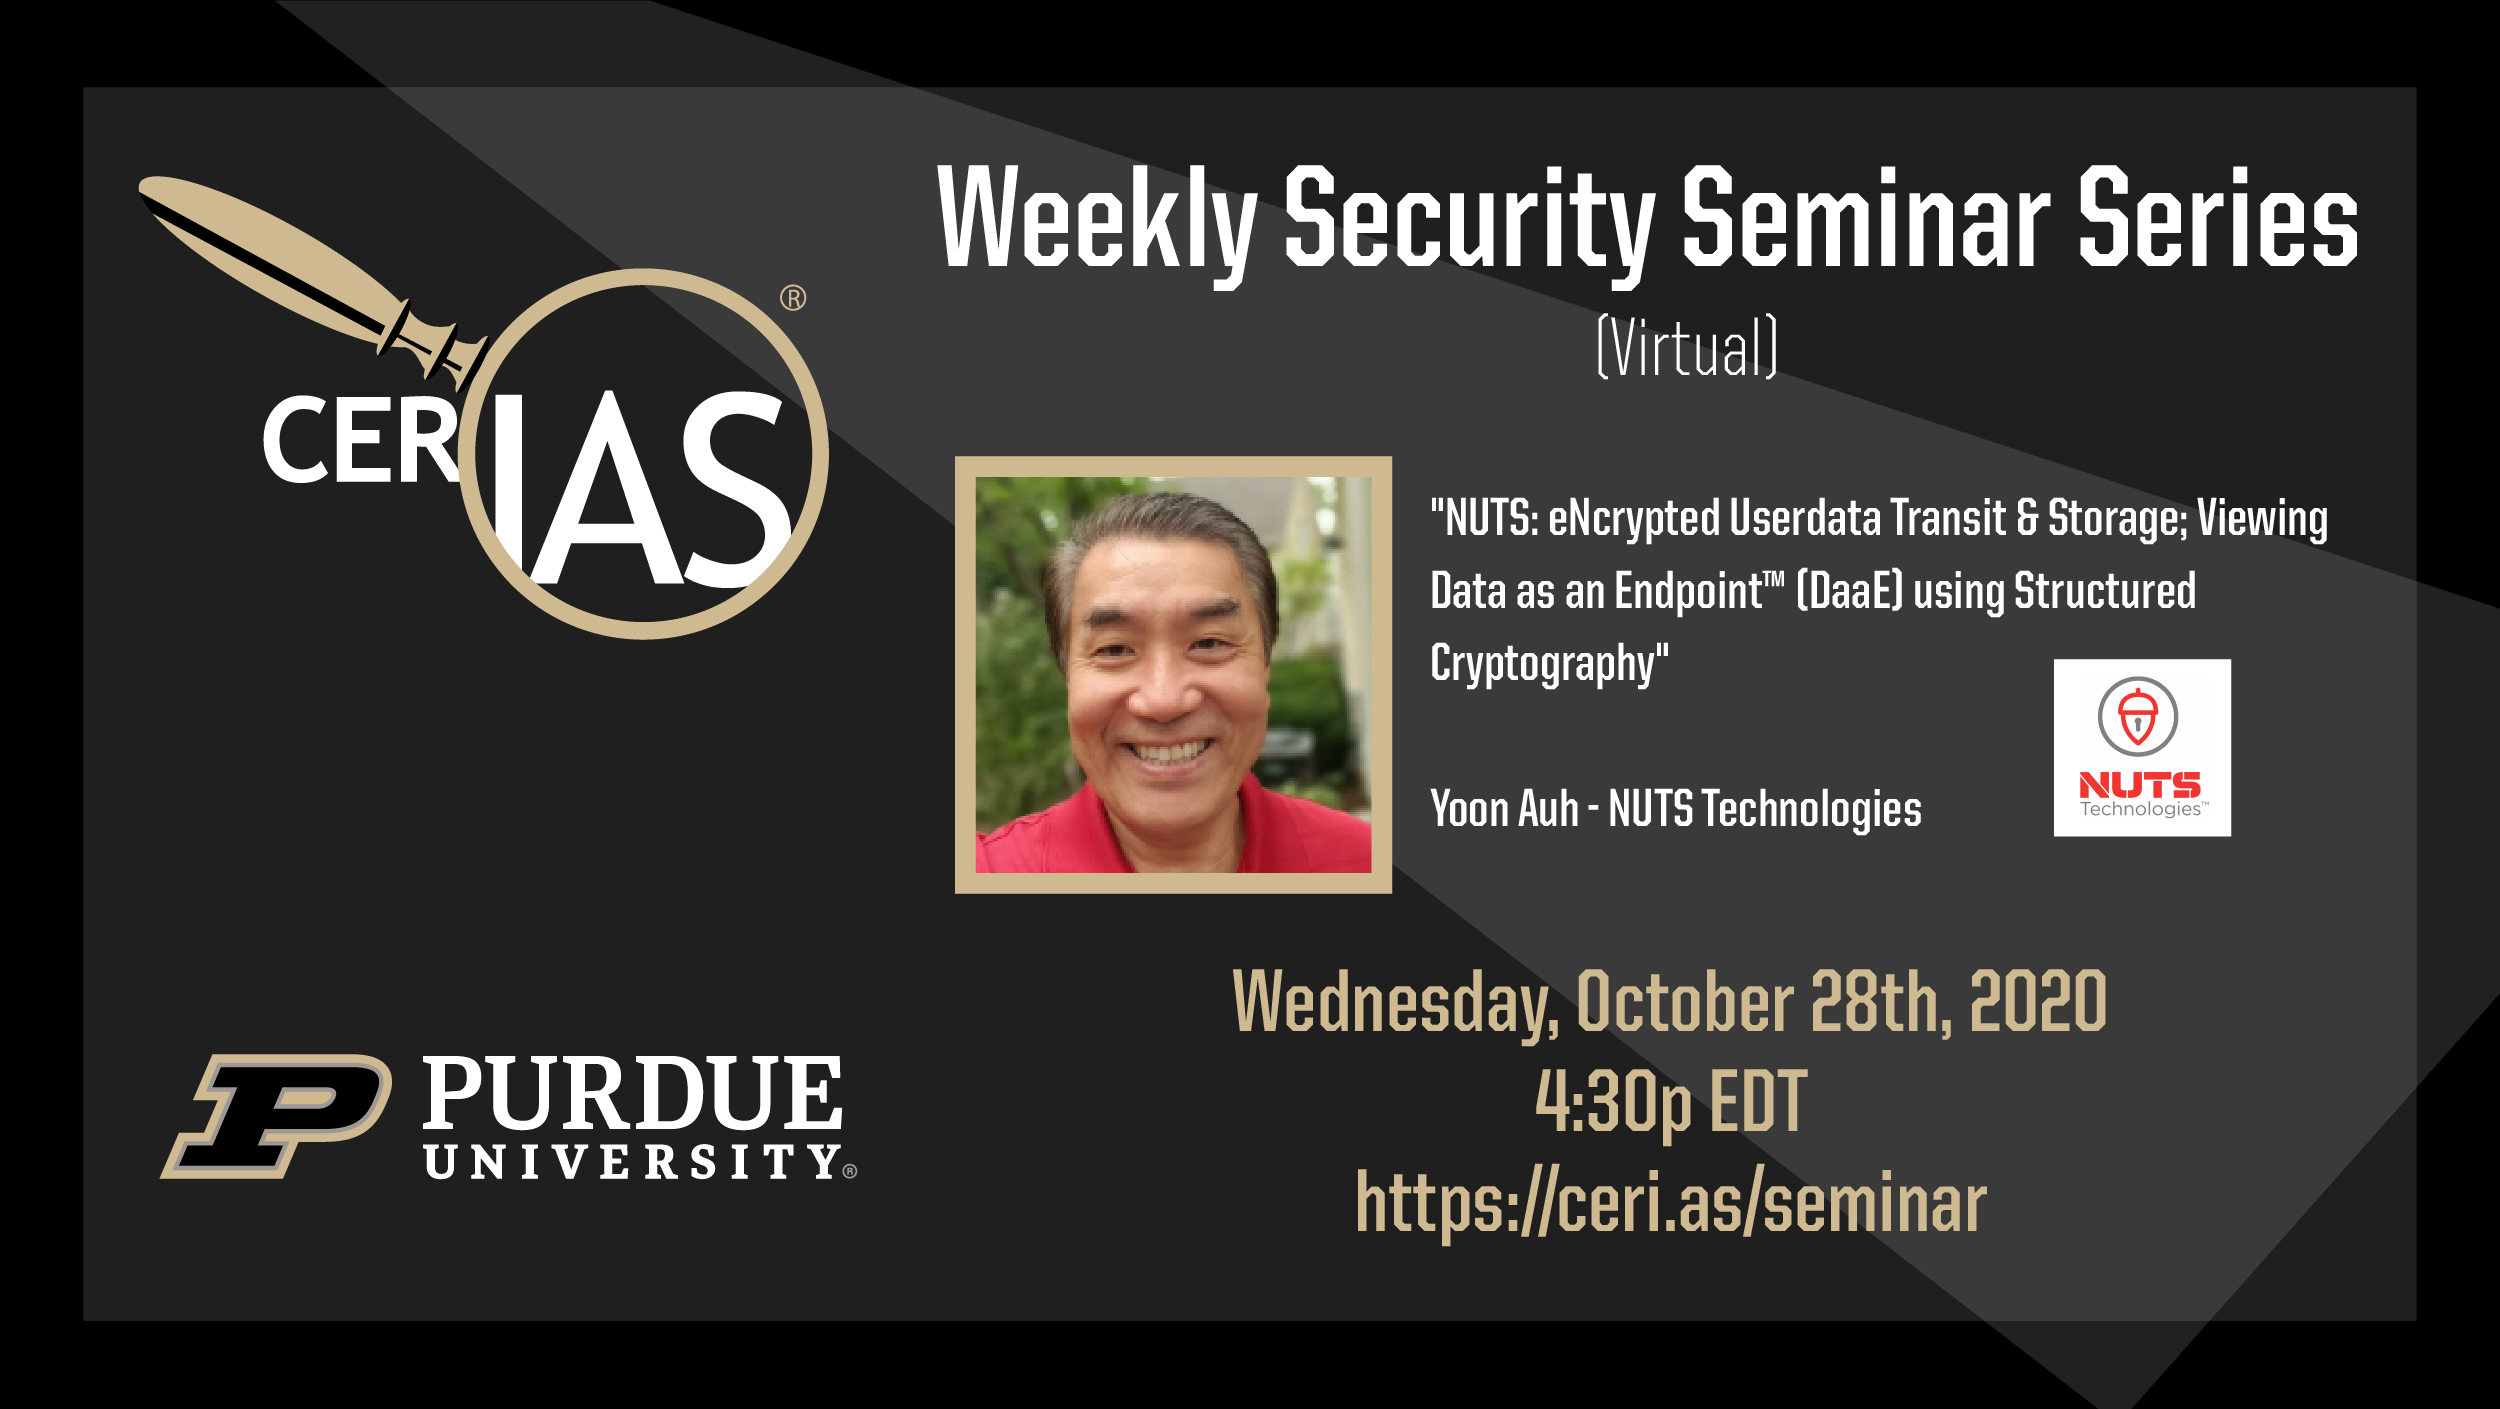 CERIAS Weekly Security Seminar: Yoon Auh - NUTS Technologies